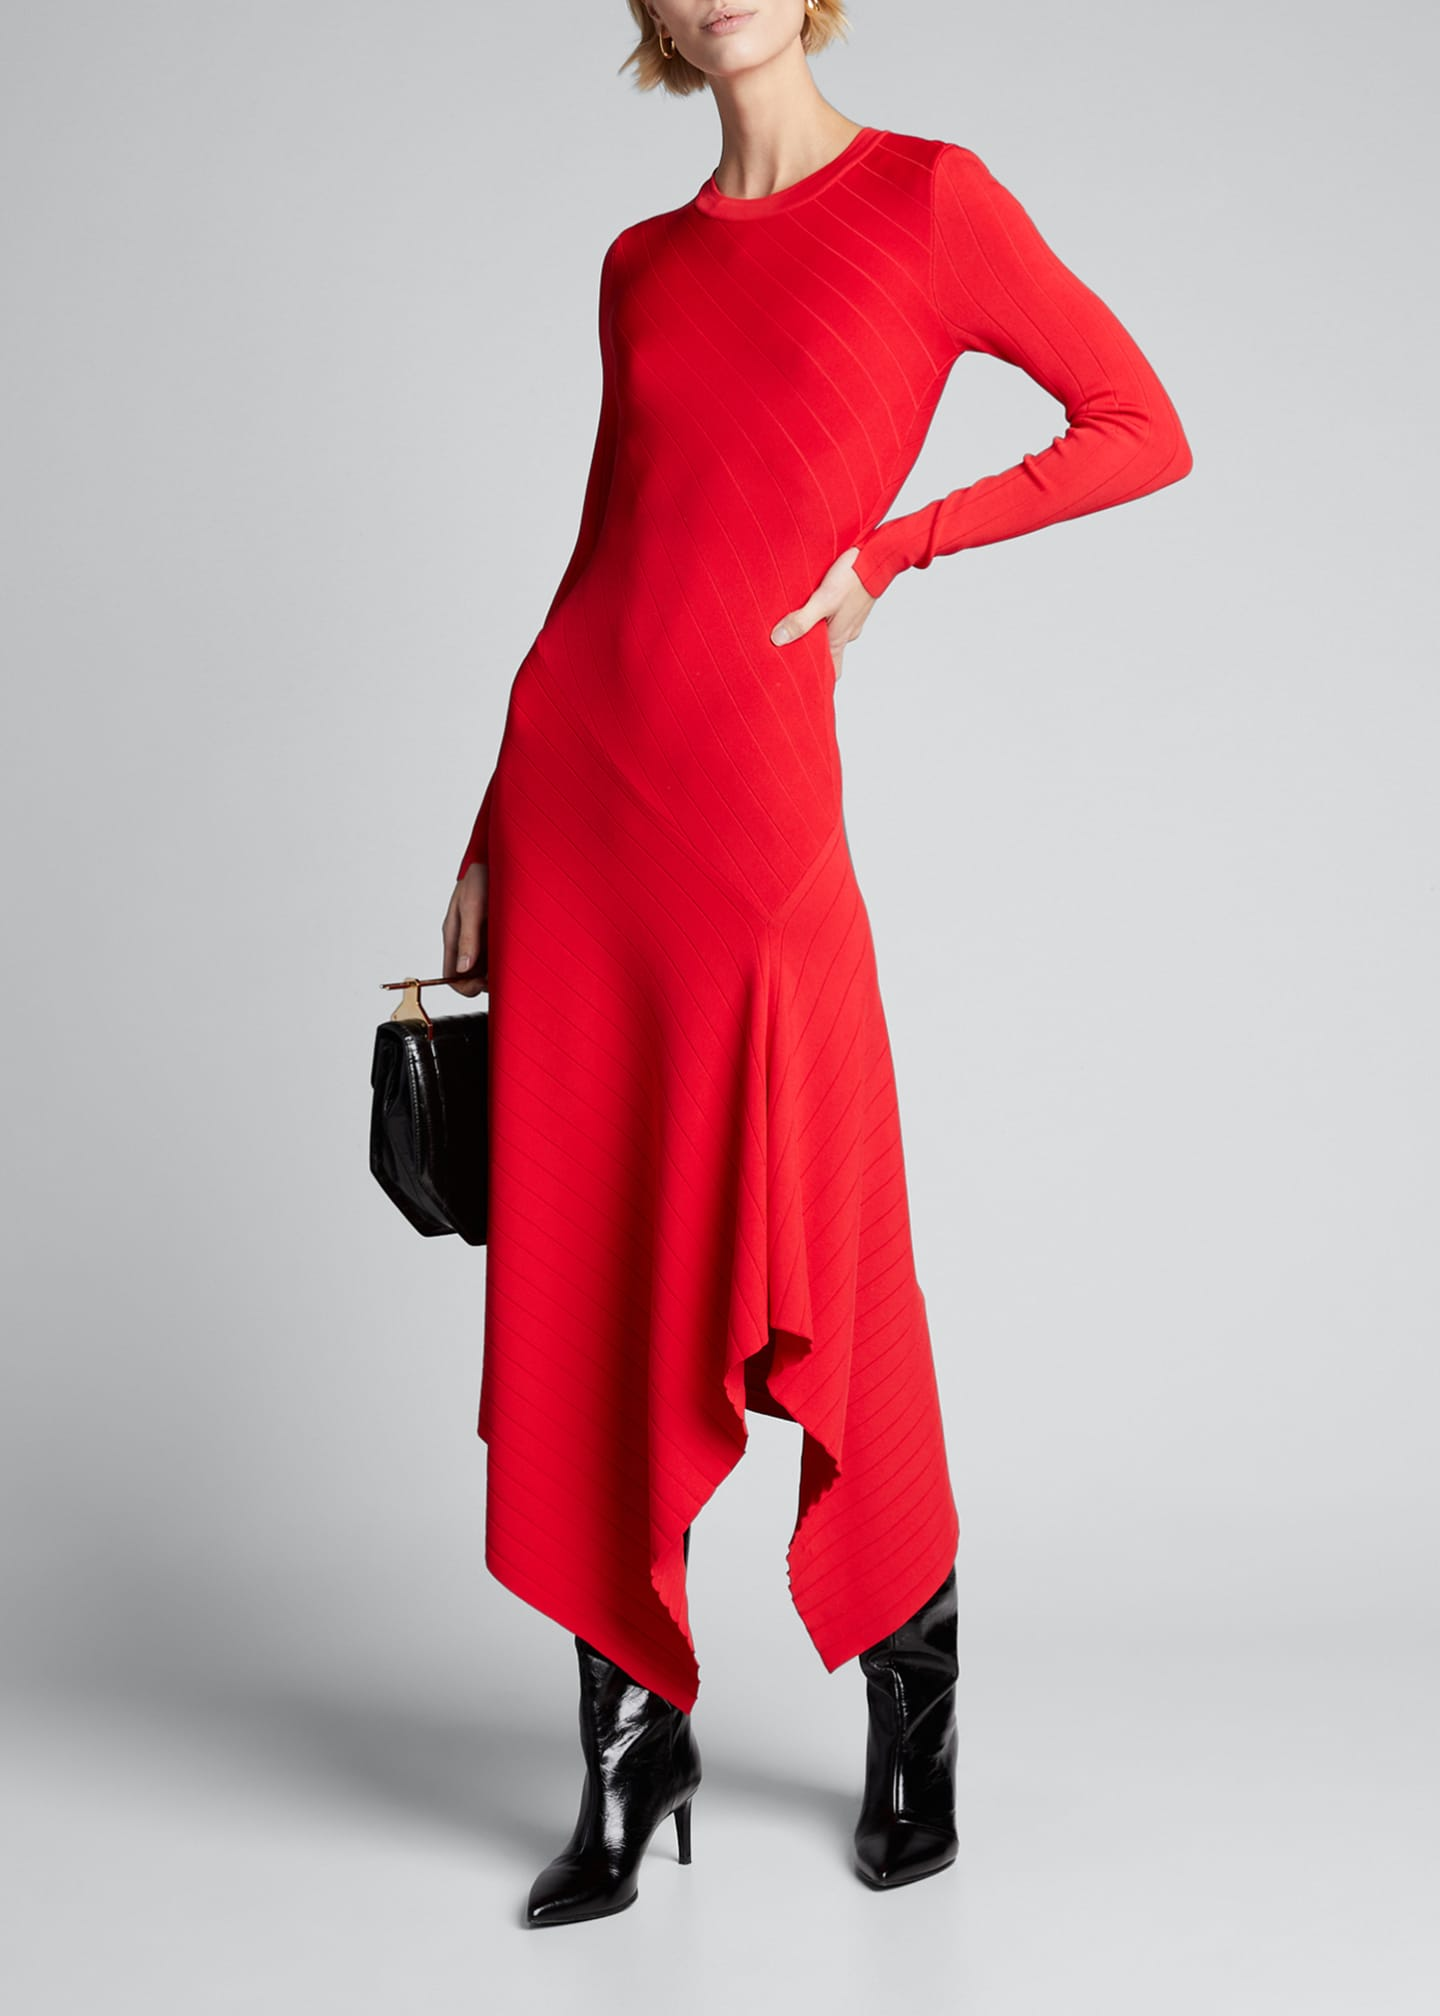 A.L.C. Viviana Asymmetrical Long-Sleeve Dress